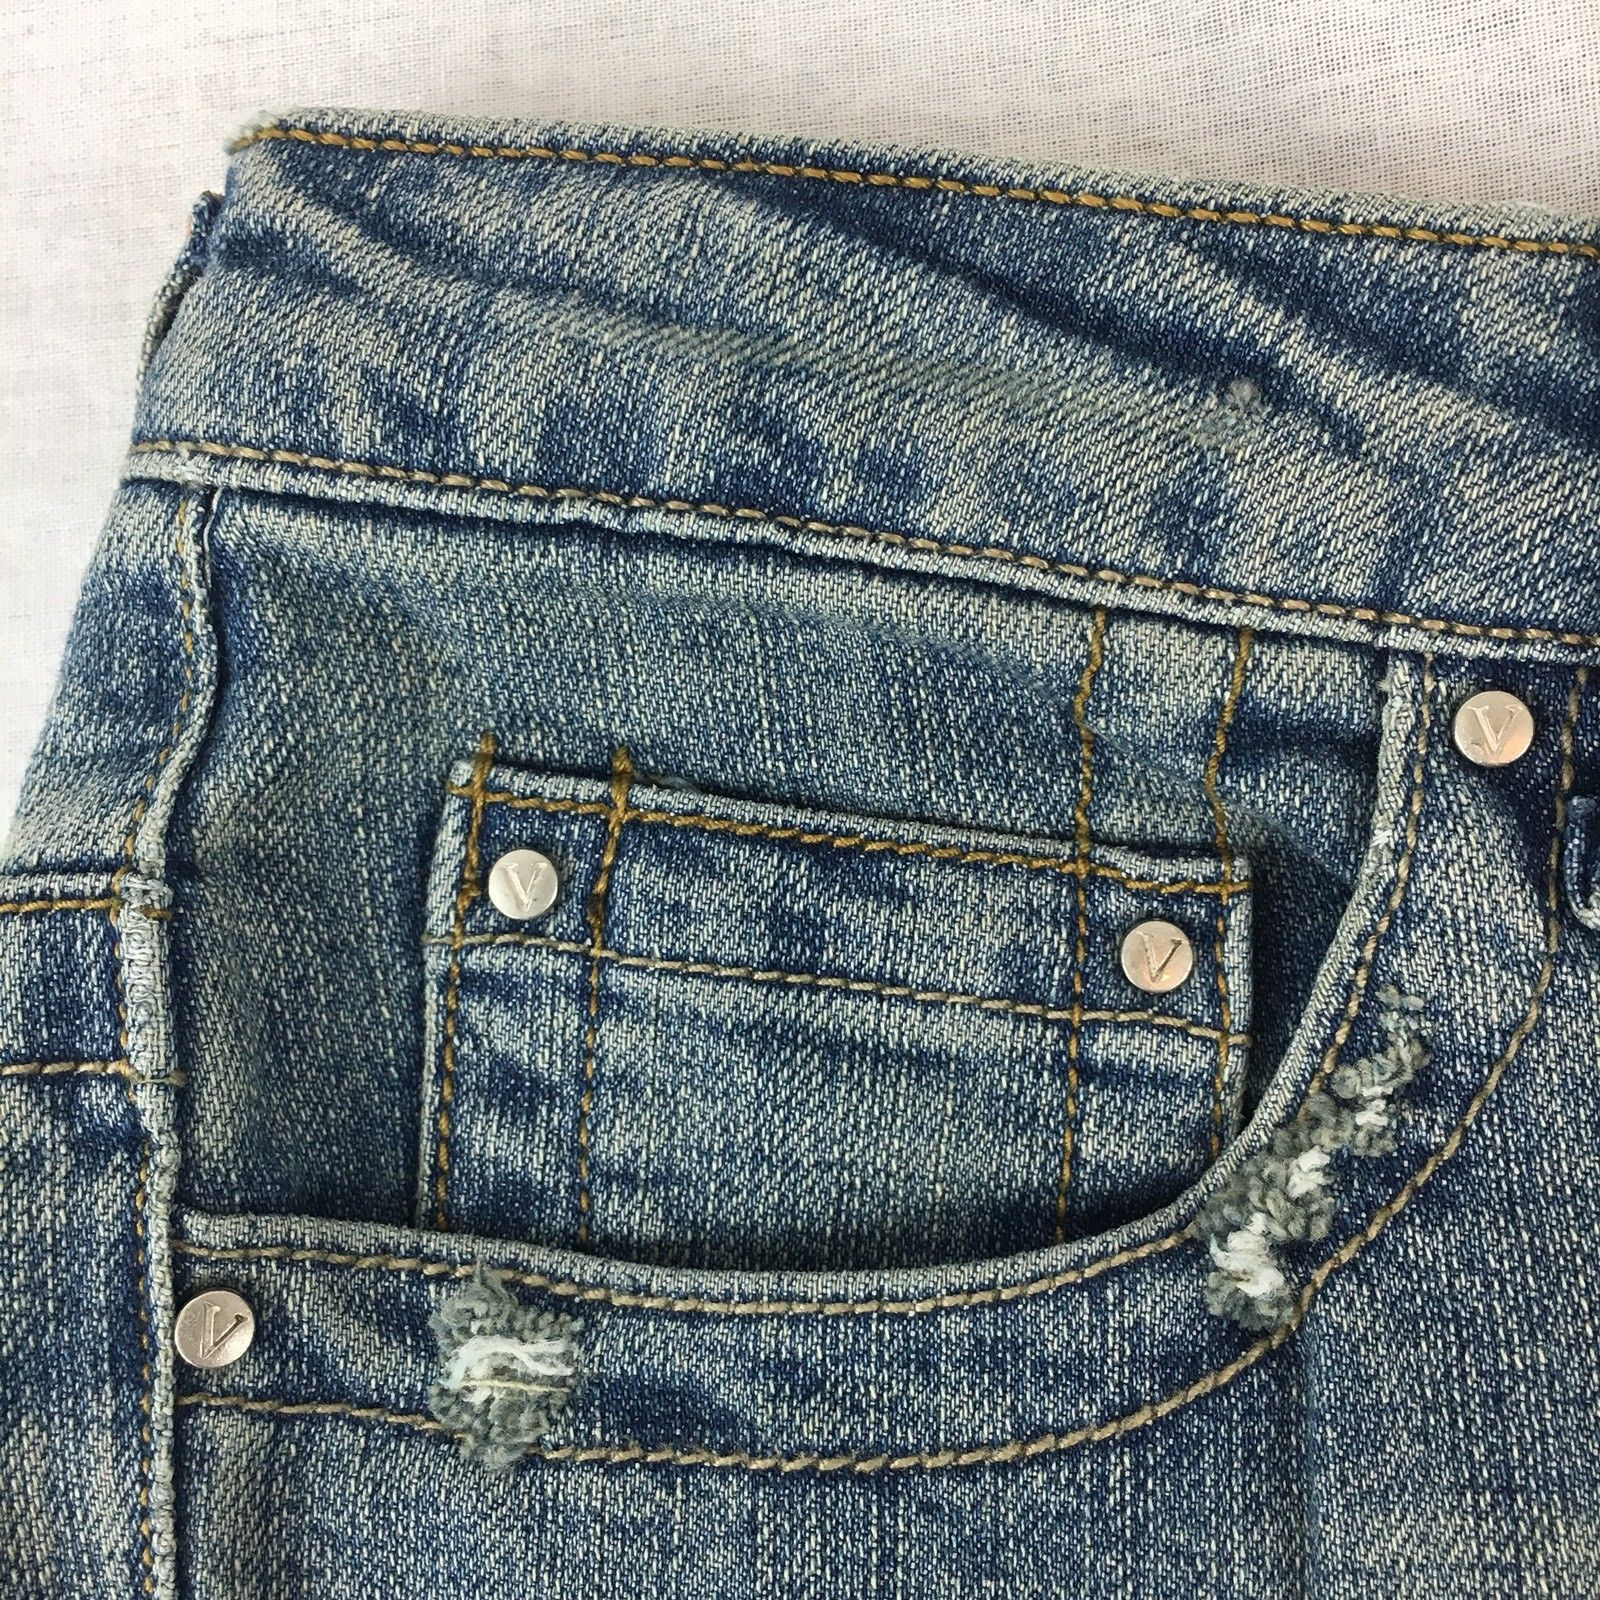 Vanilla Star Juniors Jeans Boot Cut Light Wash Embroidered Distressed Size 3x32